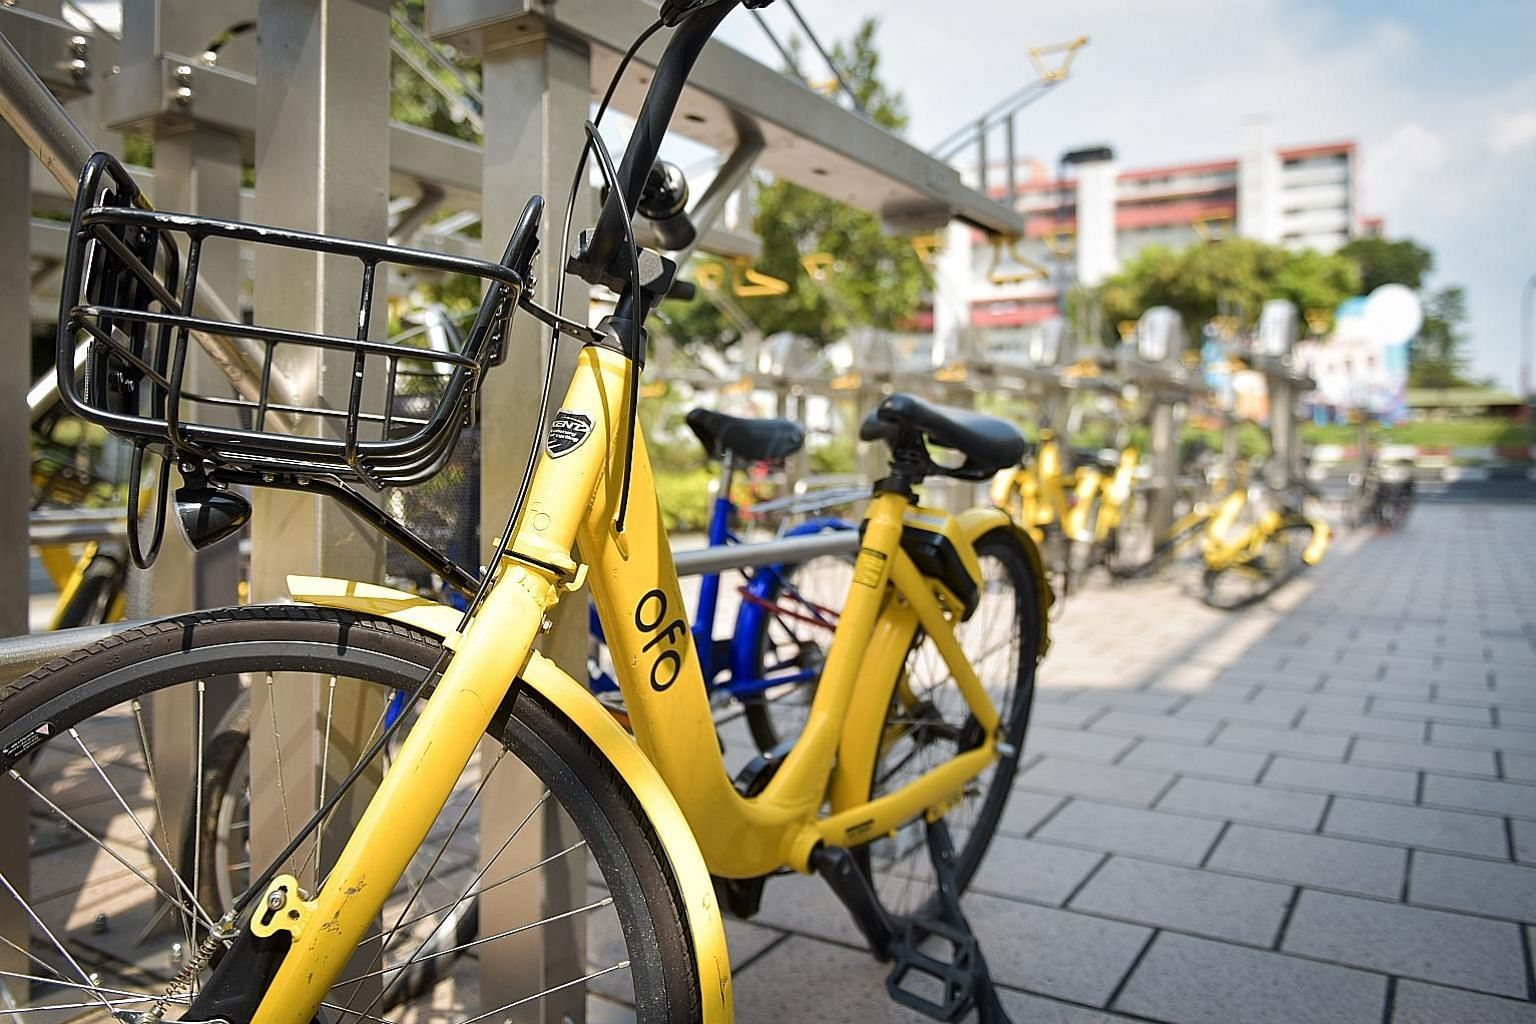 Ofo was originally allowed to have 25,000 bicycles, but the operator had requested to reduce that to 10,000. Both LTA and ofo declined to reveal the actual size of the fleet.